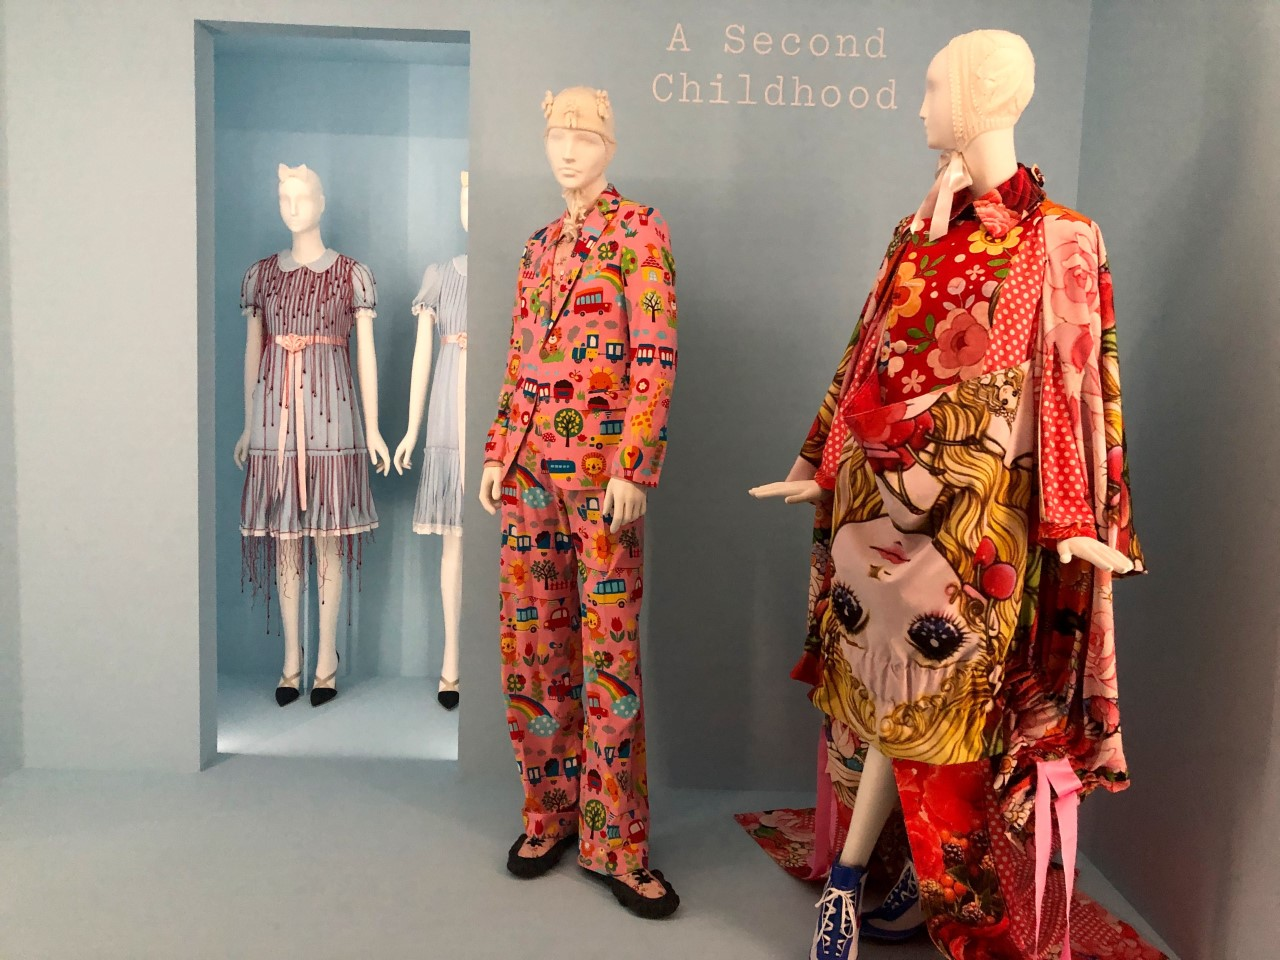 Camp: Notes on Fashion at the Metropolitan Museum of Art in New York City